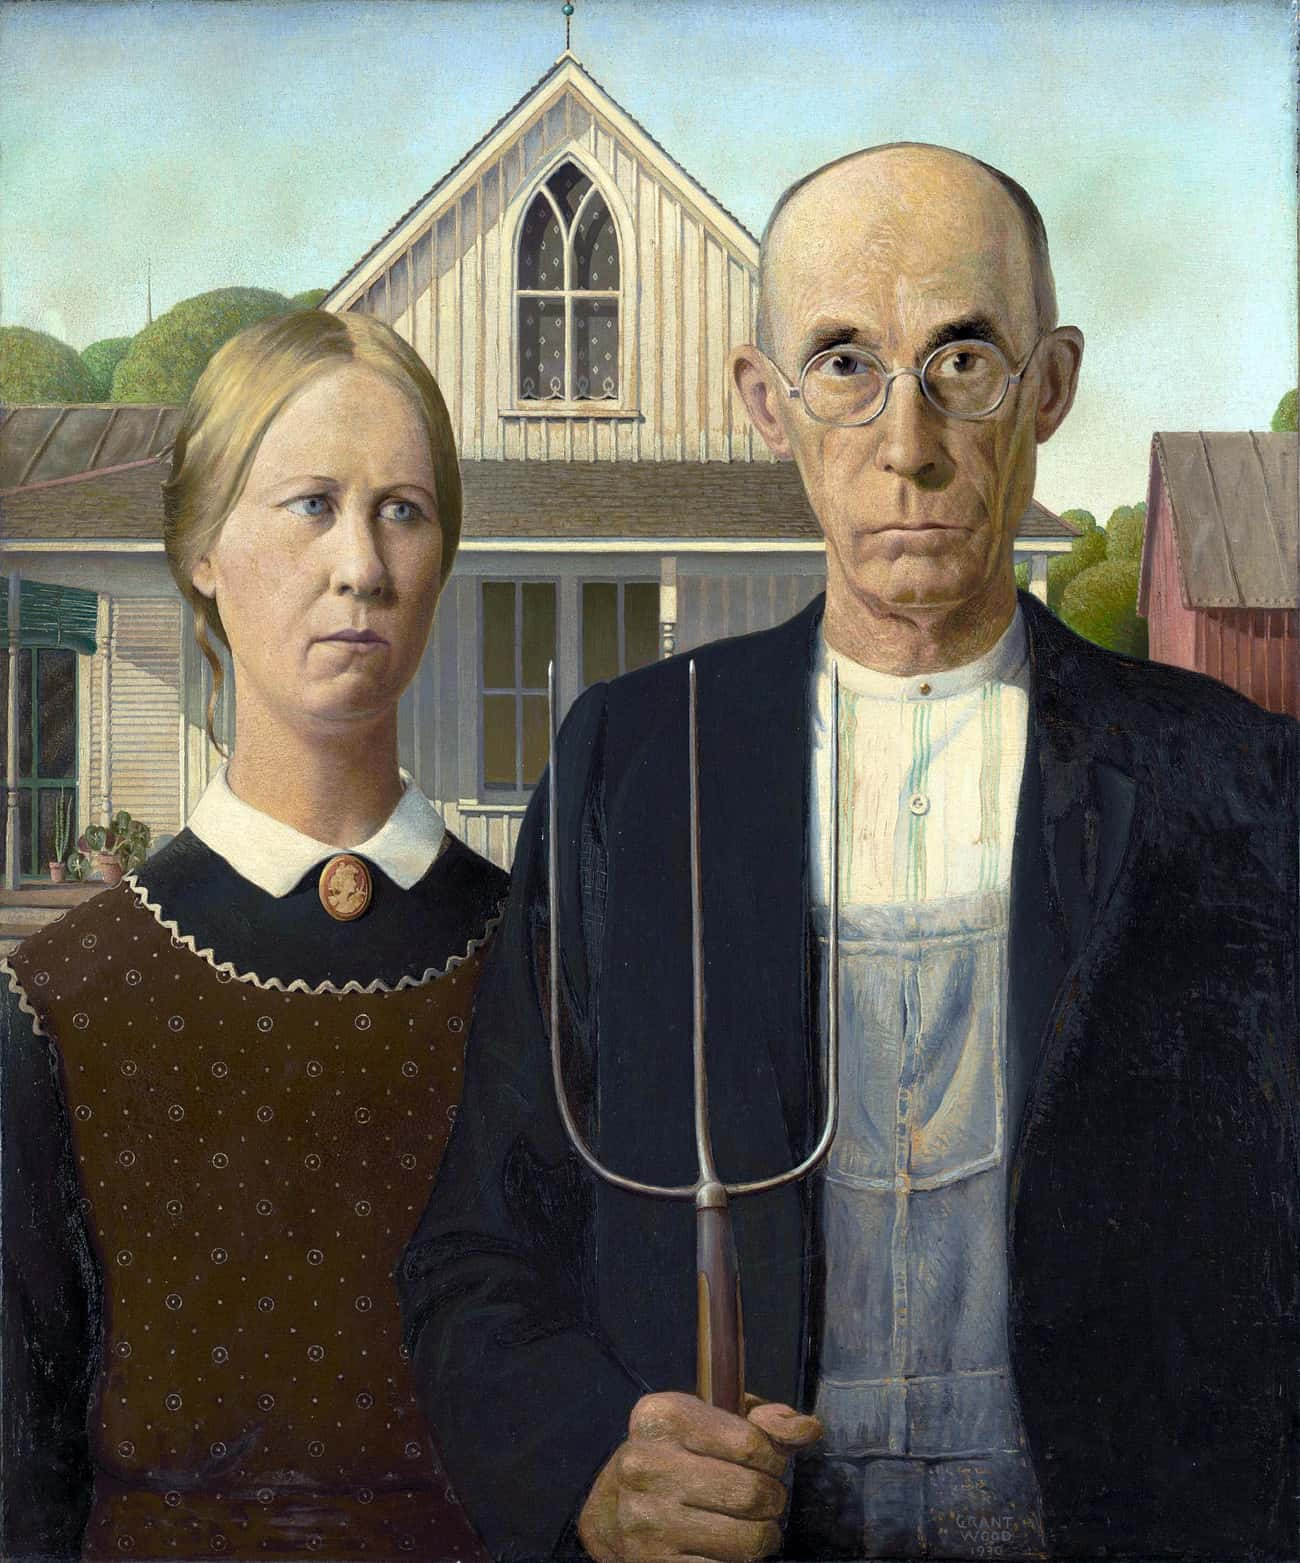 American Gothic is listed (or ranked) 1 on the list Famous Modernism Artwork